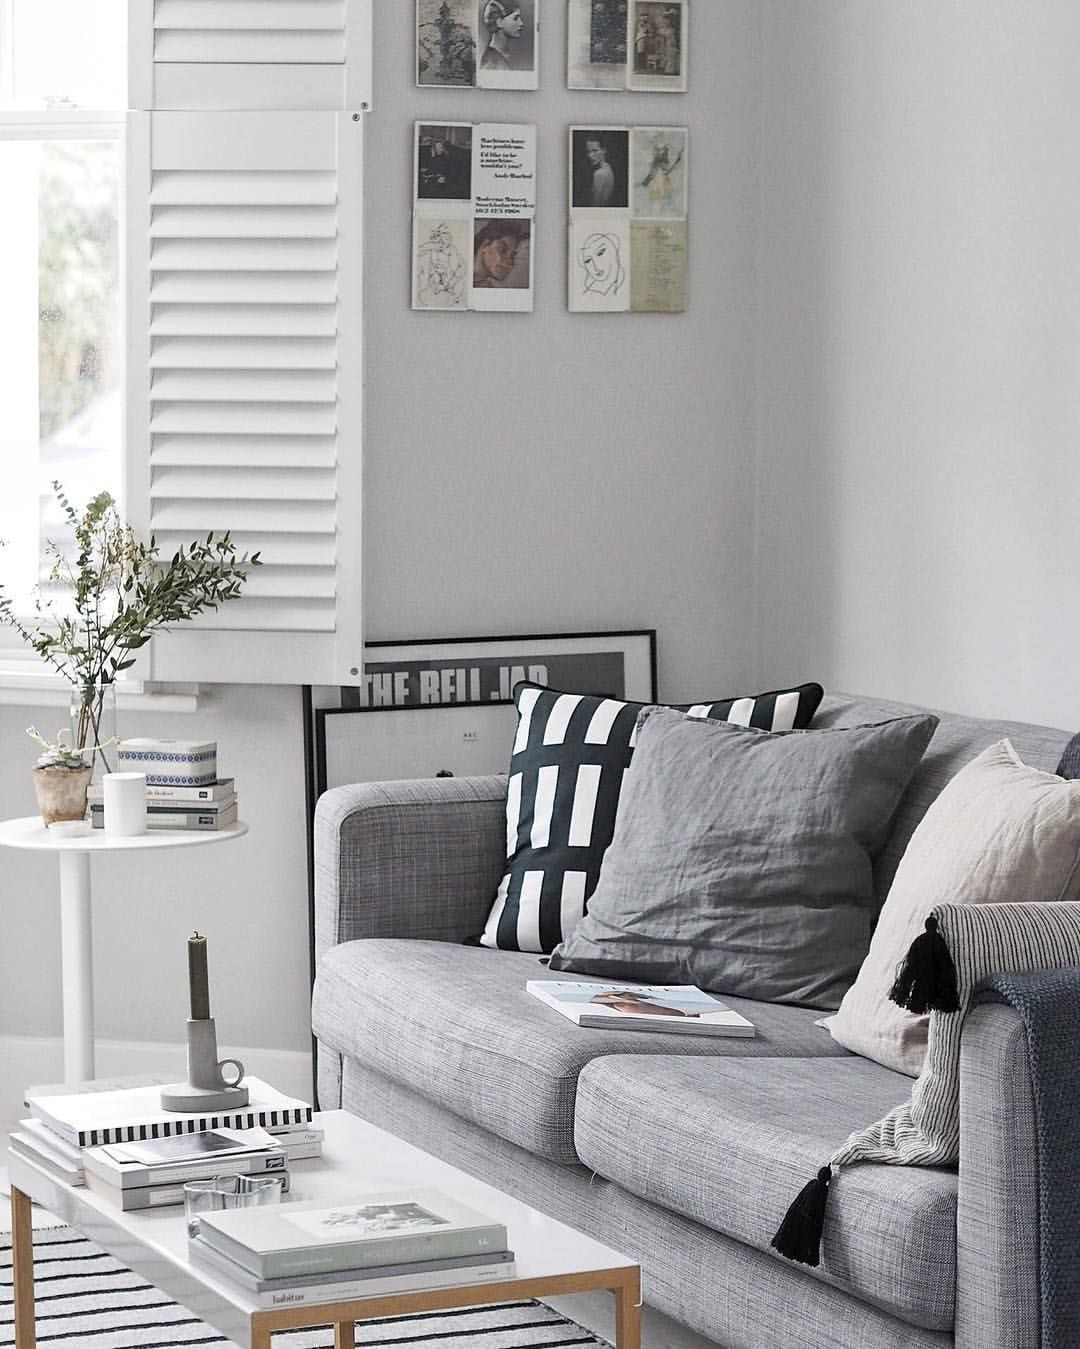 latest sofa designs for living room%0A Light grey living room with grey IKEA sofa and monochrome accessories   minimal design and pared